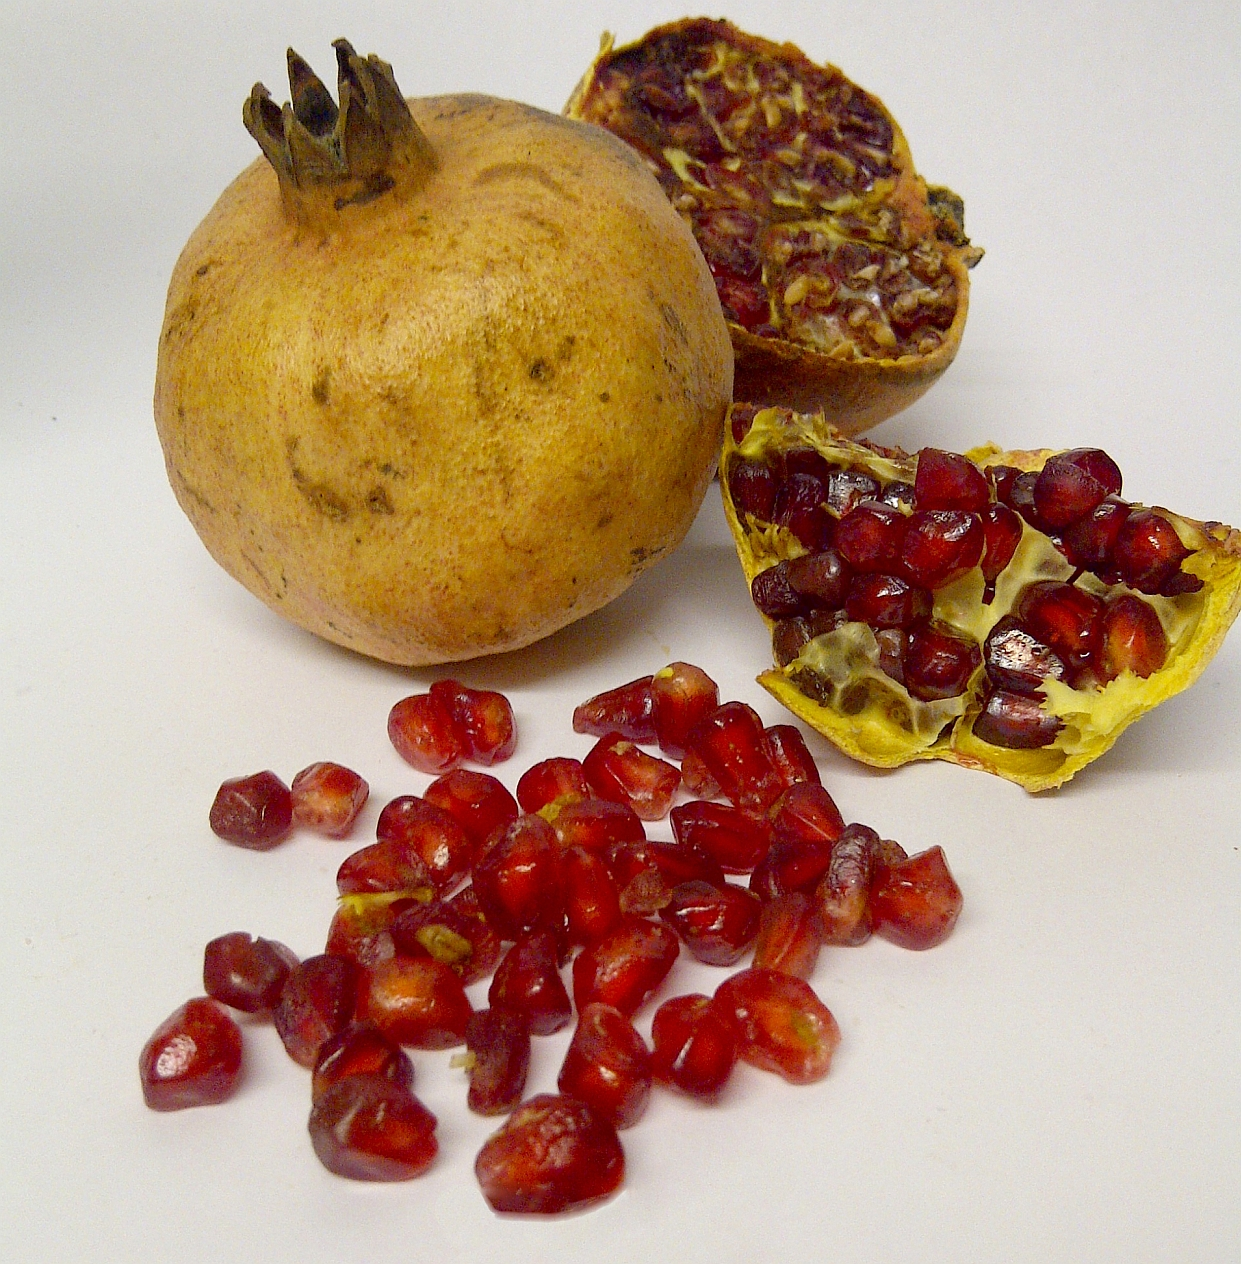 pomegrante has many health benefits